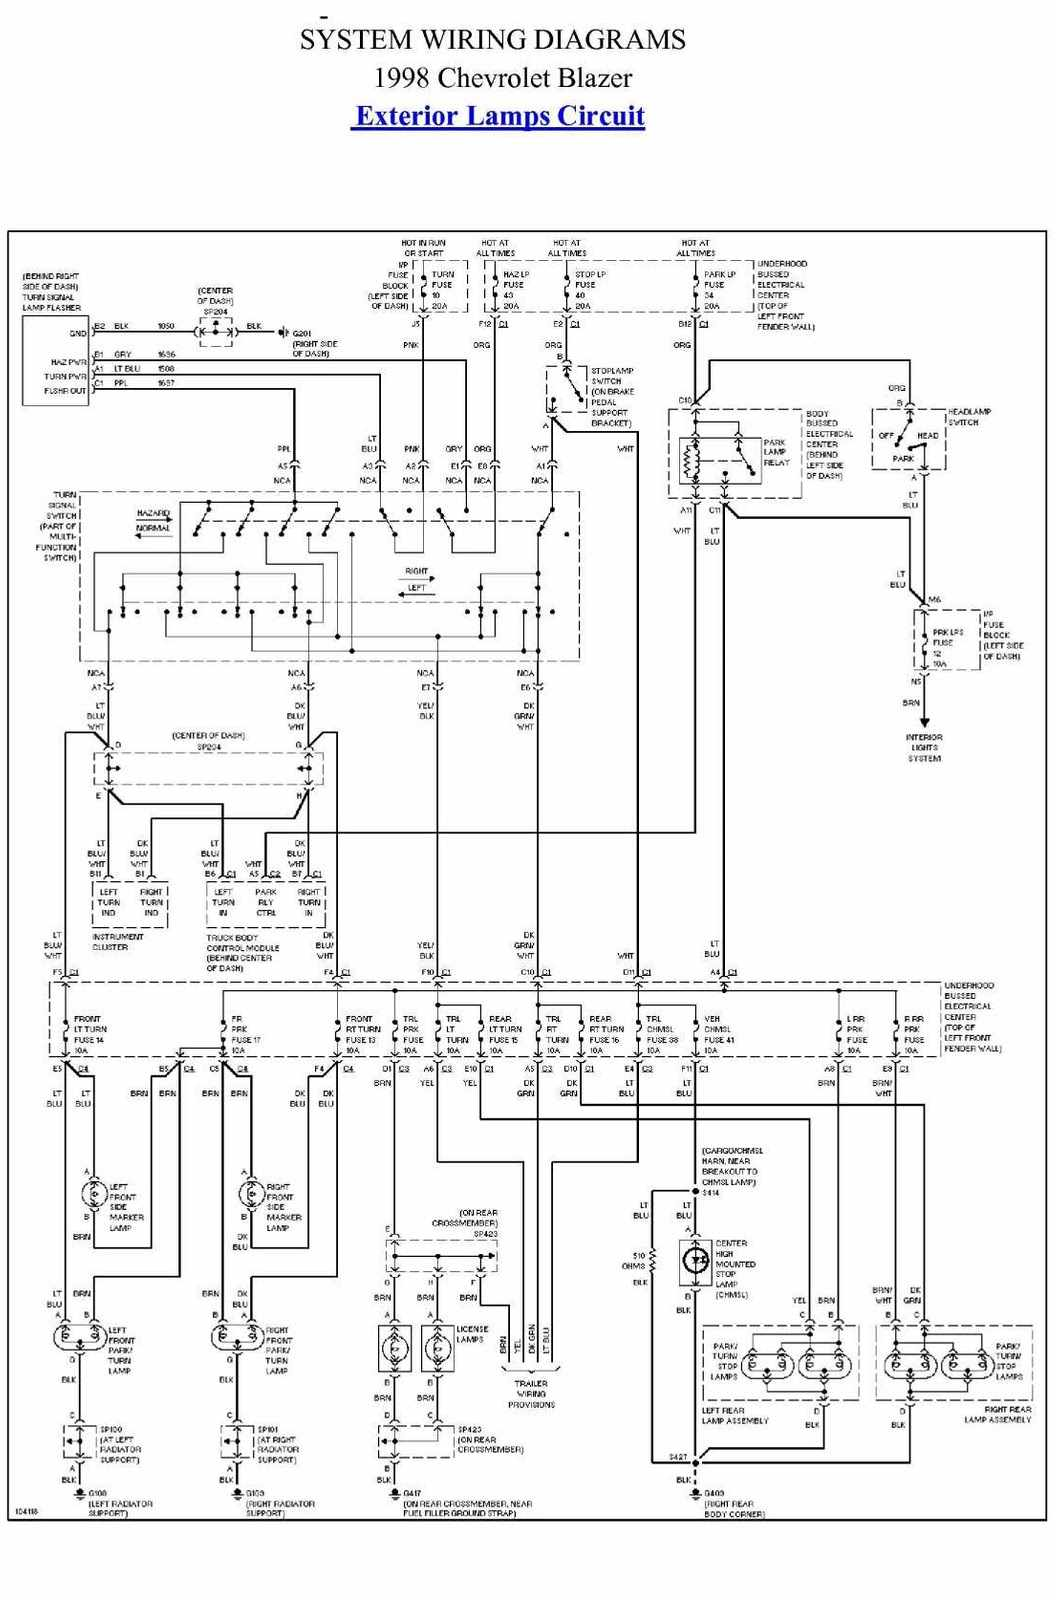 Exterior Lamp Circuit Diagram Of Chevrolet Blazer